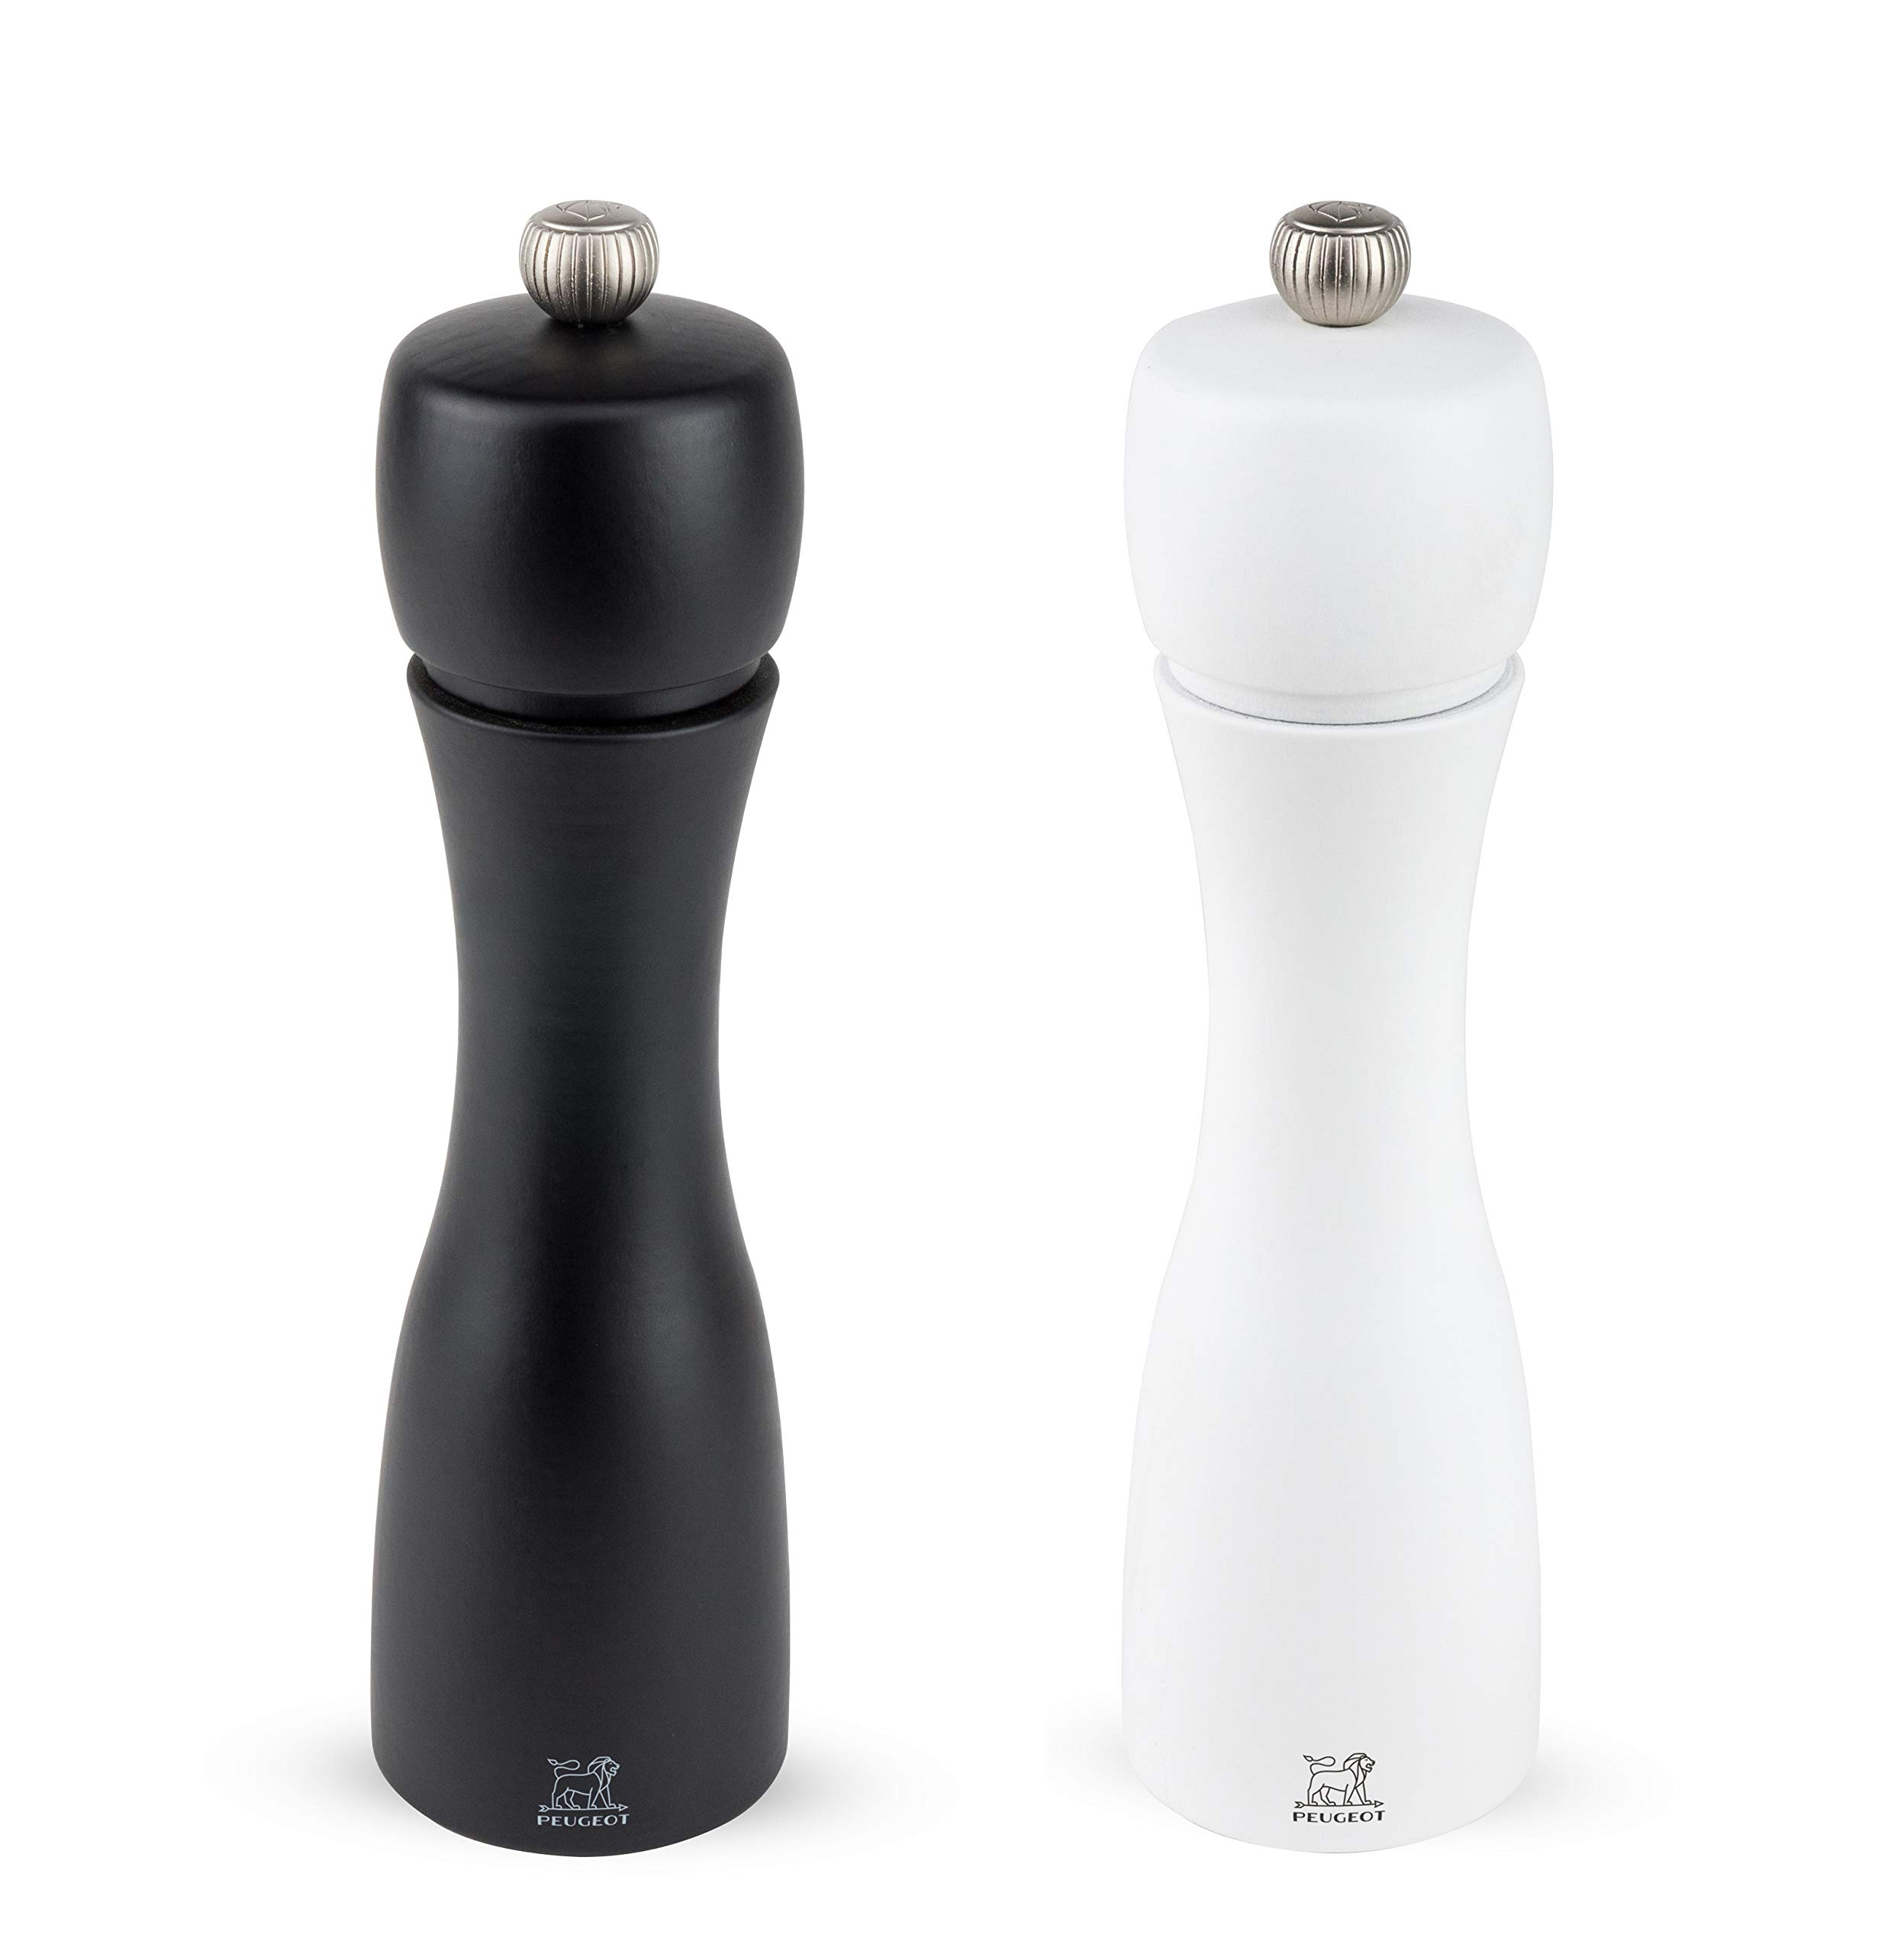 Peugeot Tahiti 8 Inch Black Pepper Mill and White Salt Mill Set by Peugeot